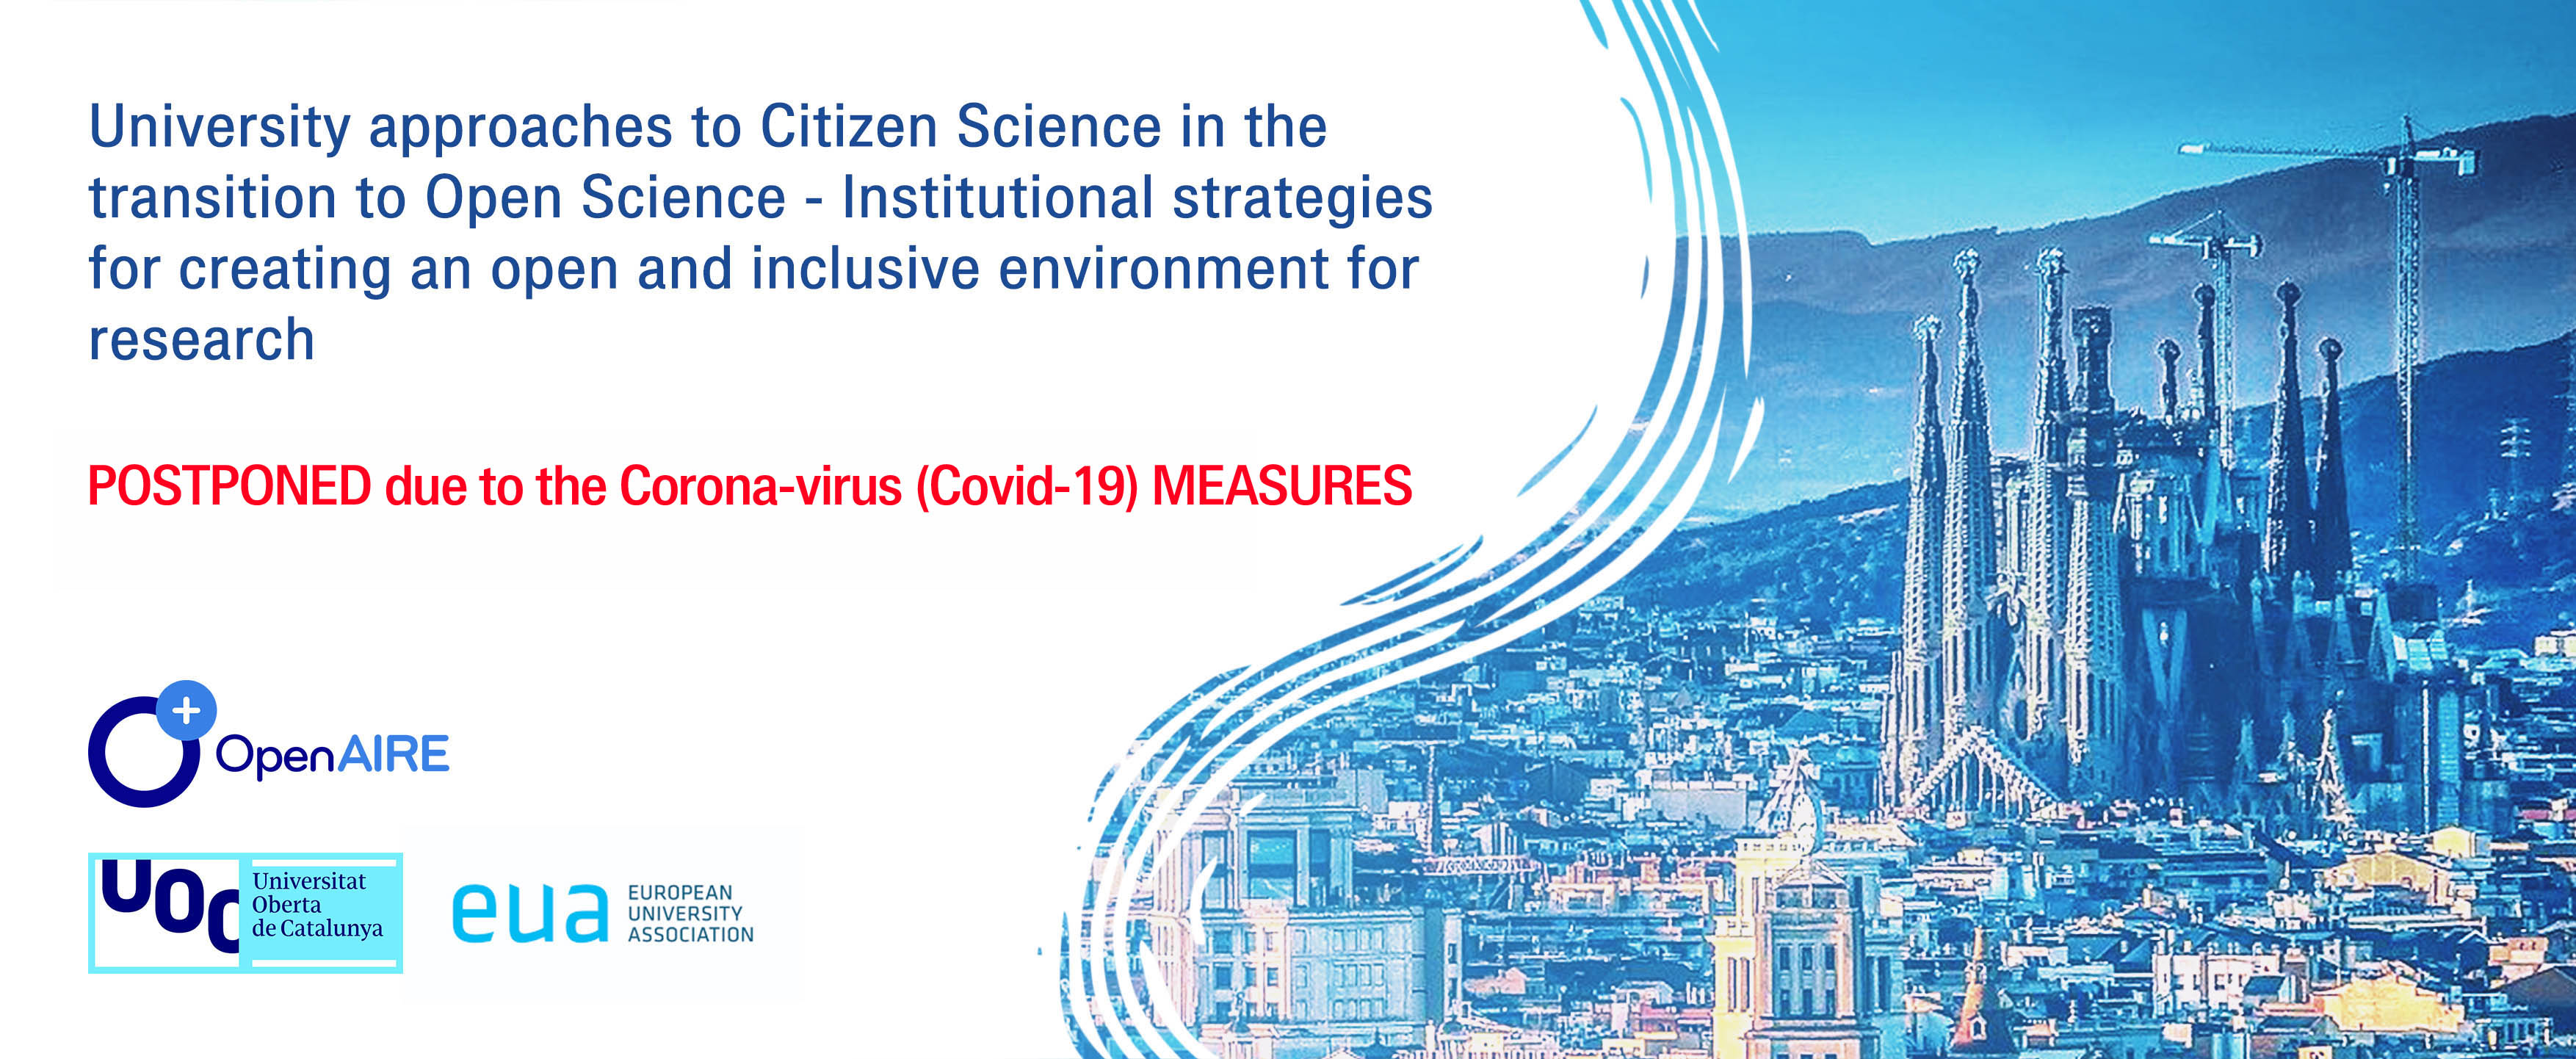 University approaches to Citizen Science in the transition to Open Science - Institutional strategies for creating an open and inclusive environment for research (12th OpenAIRE workshop - 2020)